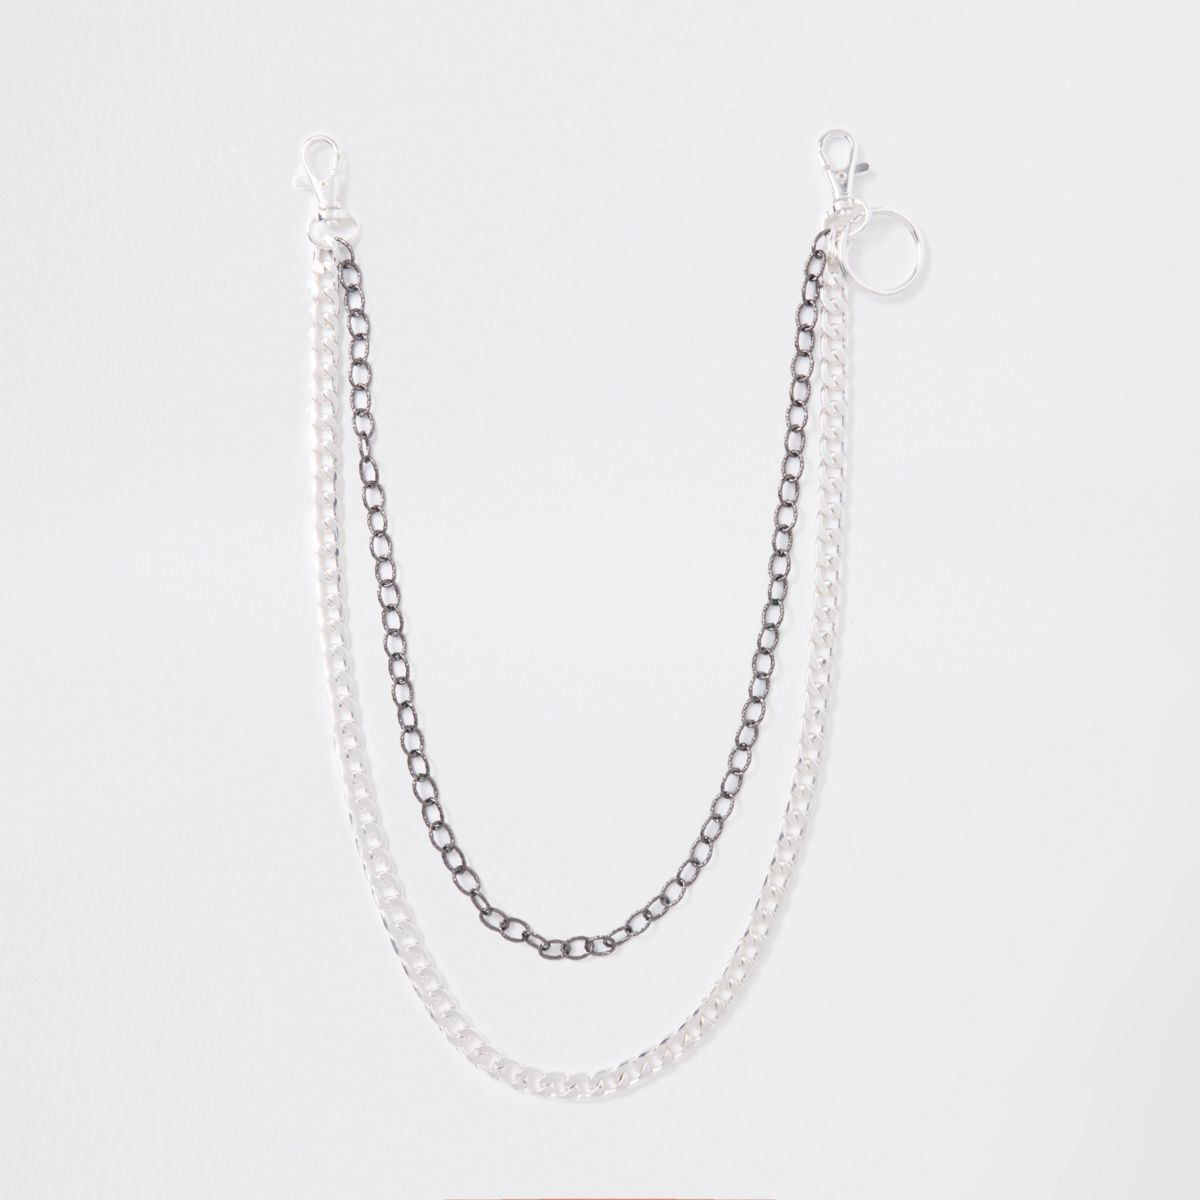 Silver tone double jeans chain